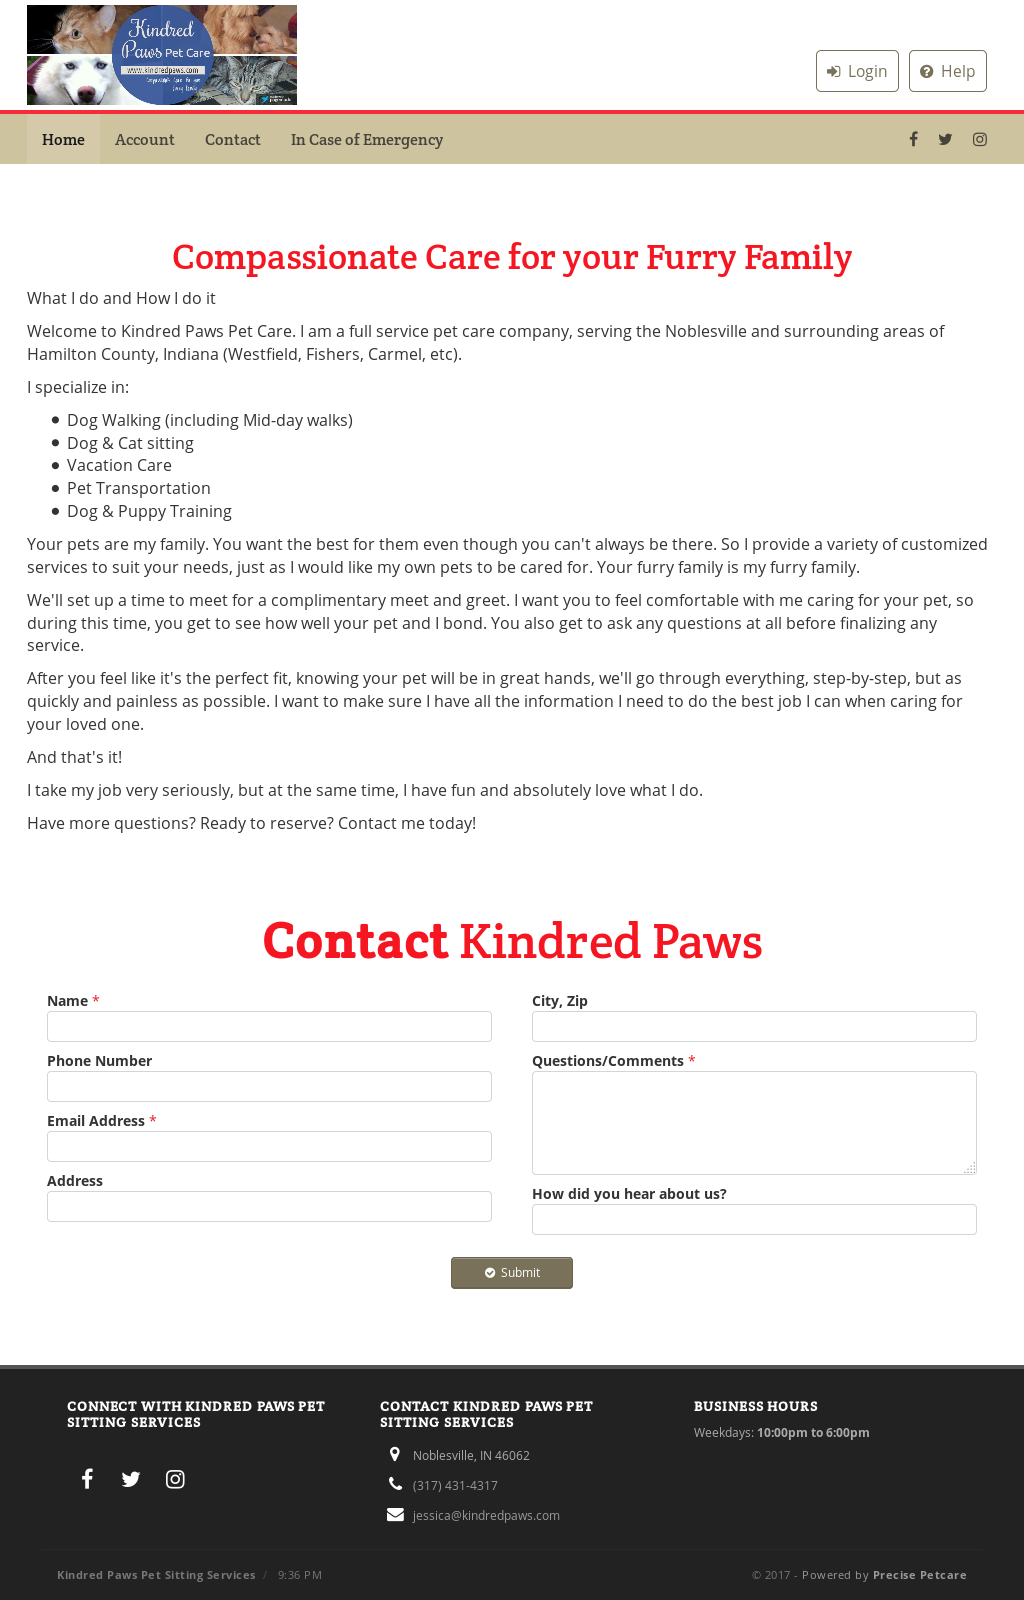 Kindred Paws Pet Care Competitors, Revenue and Employees